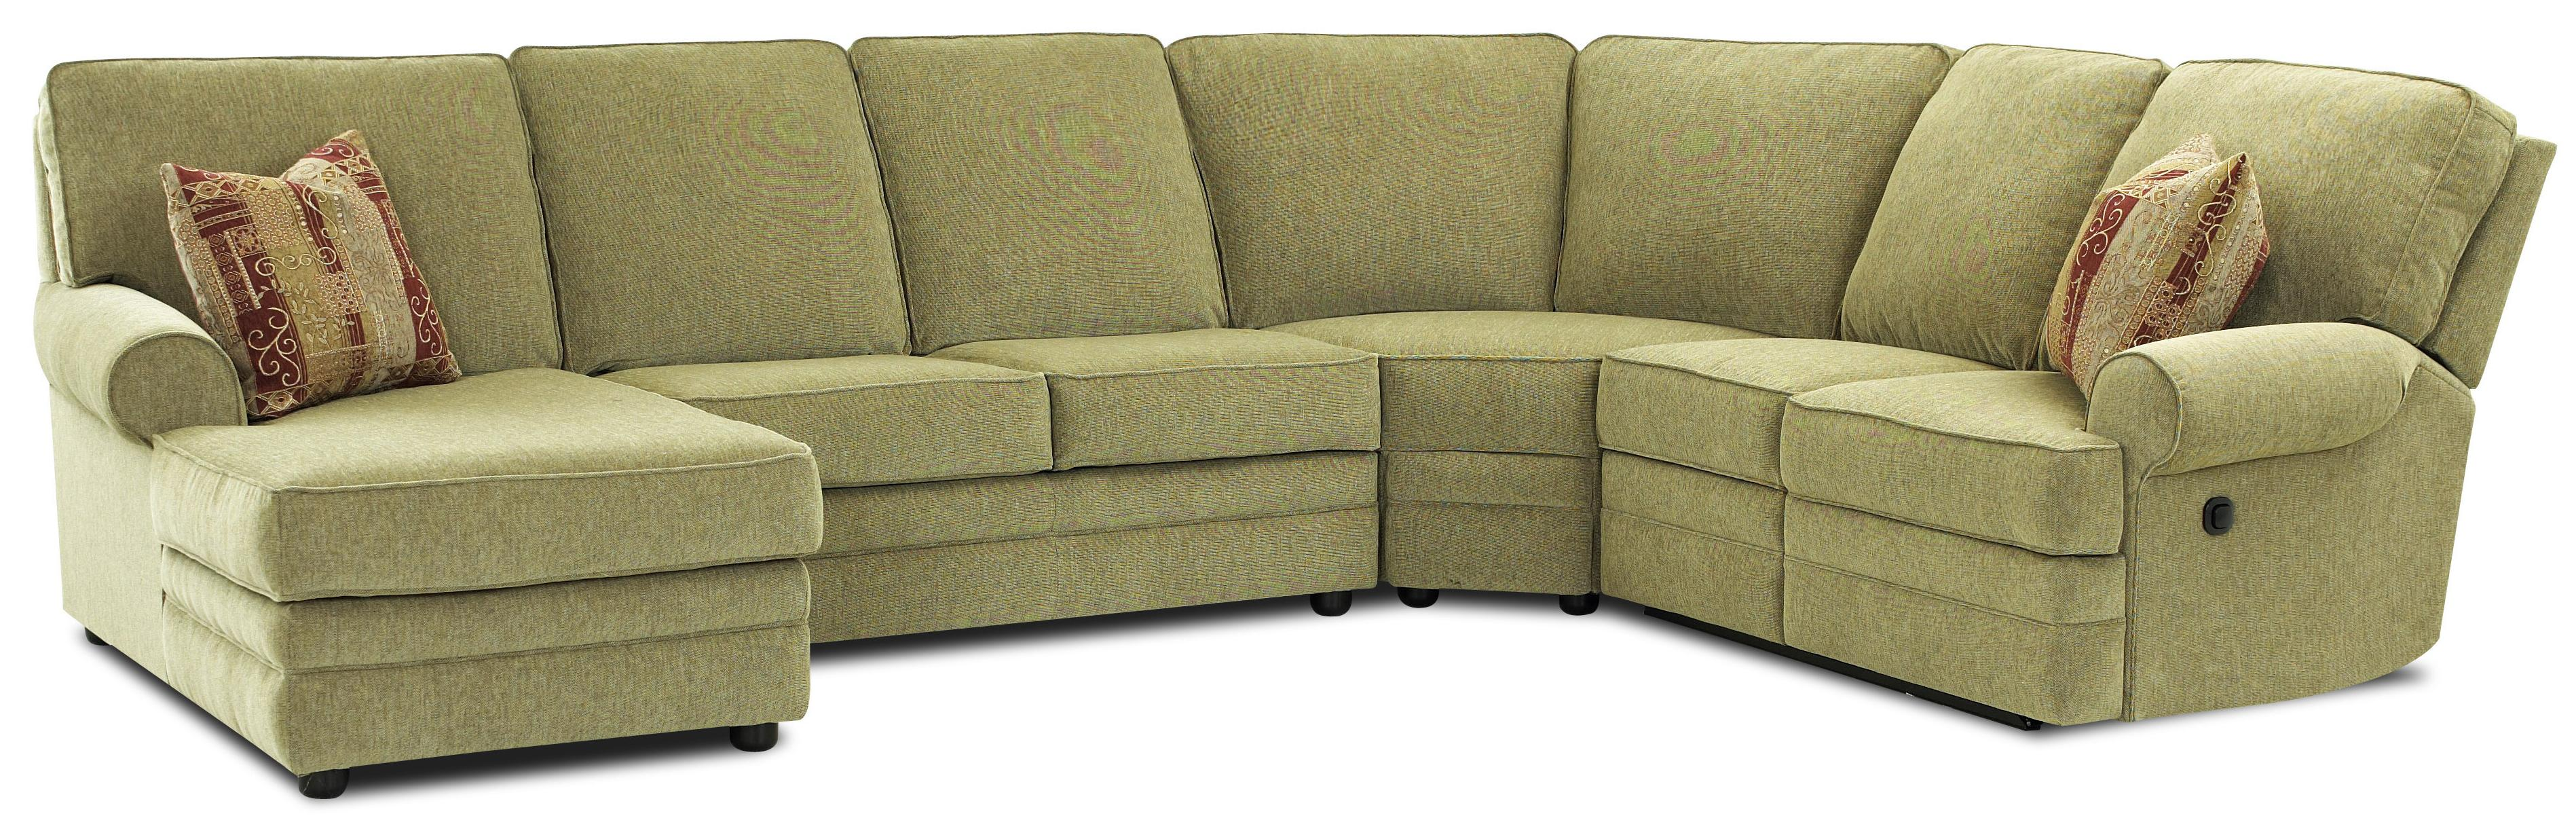 Reclining Sectional with Left Side Chaise by Klaussner